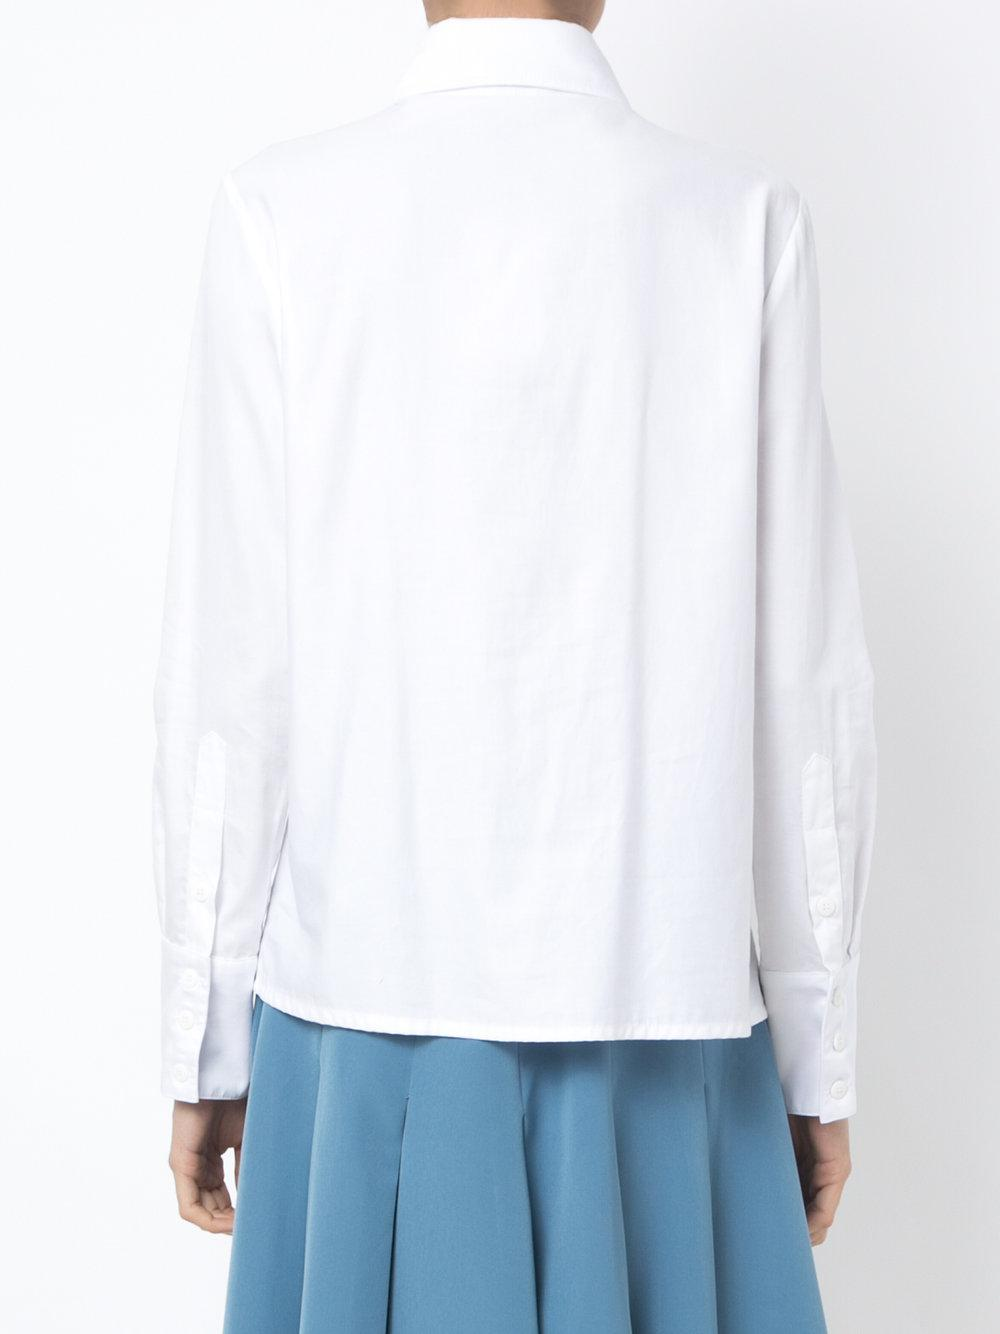 Olympiah Cotton Pleated Midi Skirt in Blue